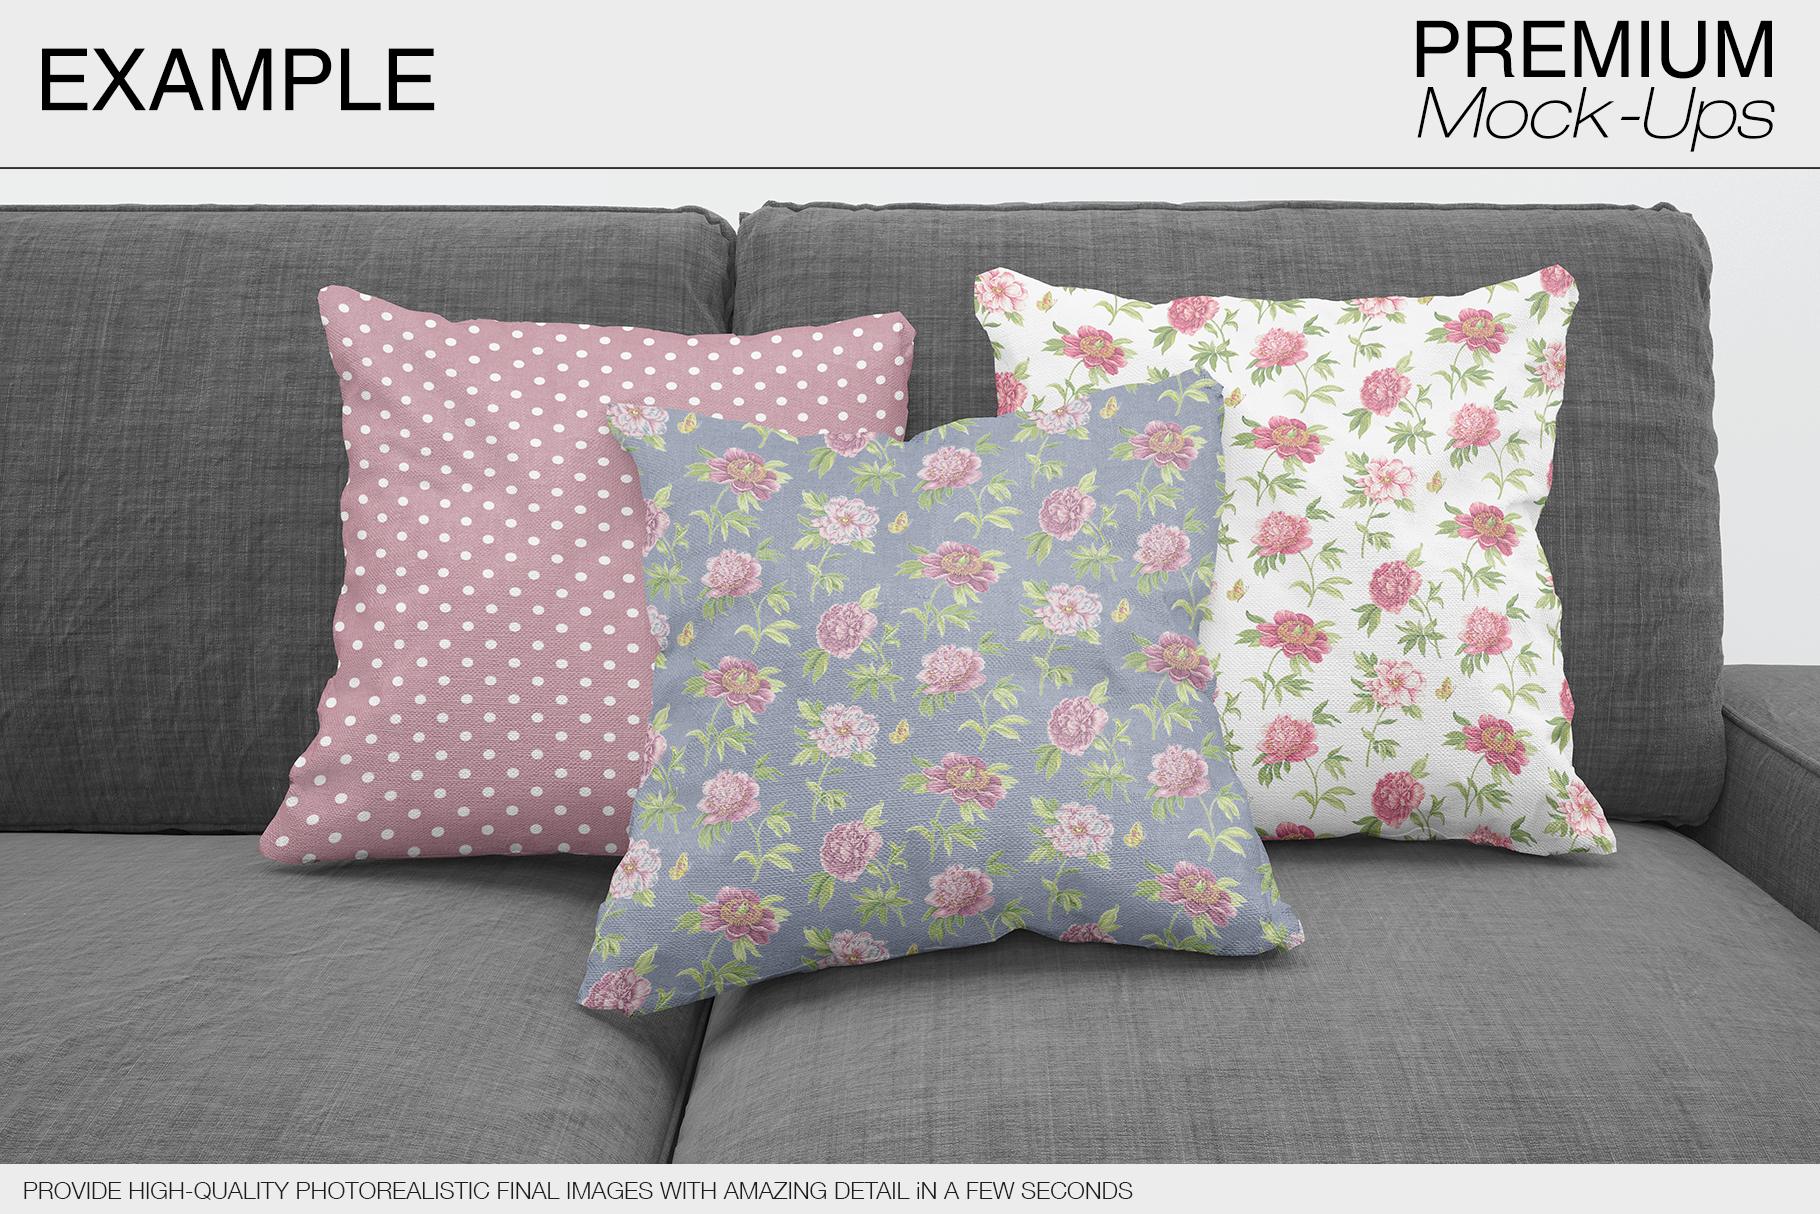 Pillow Mockups example image 4